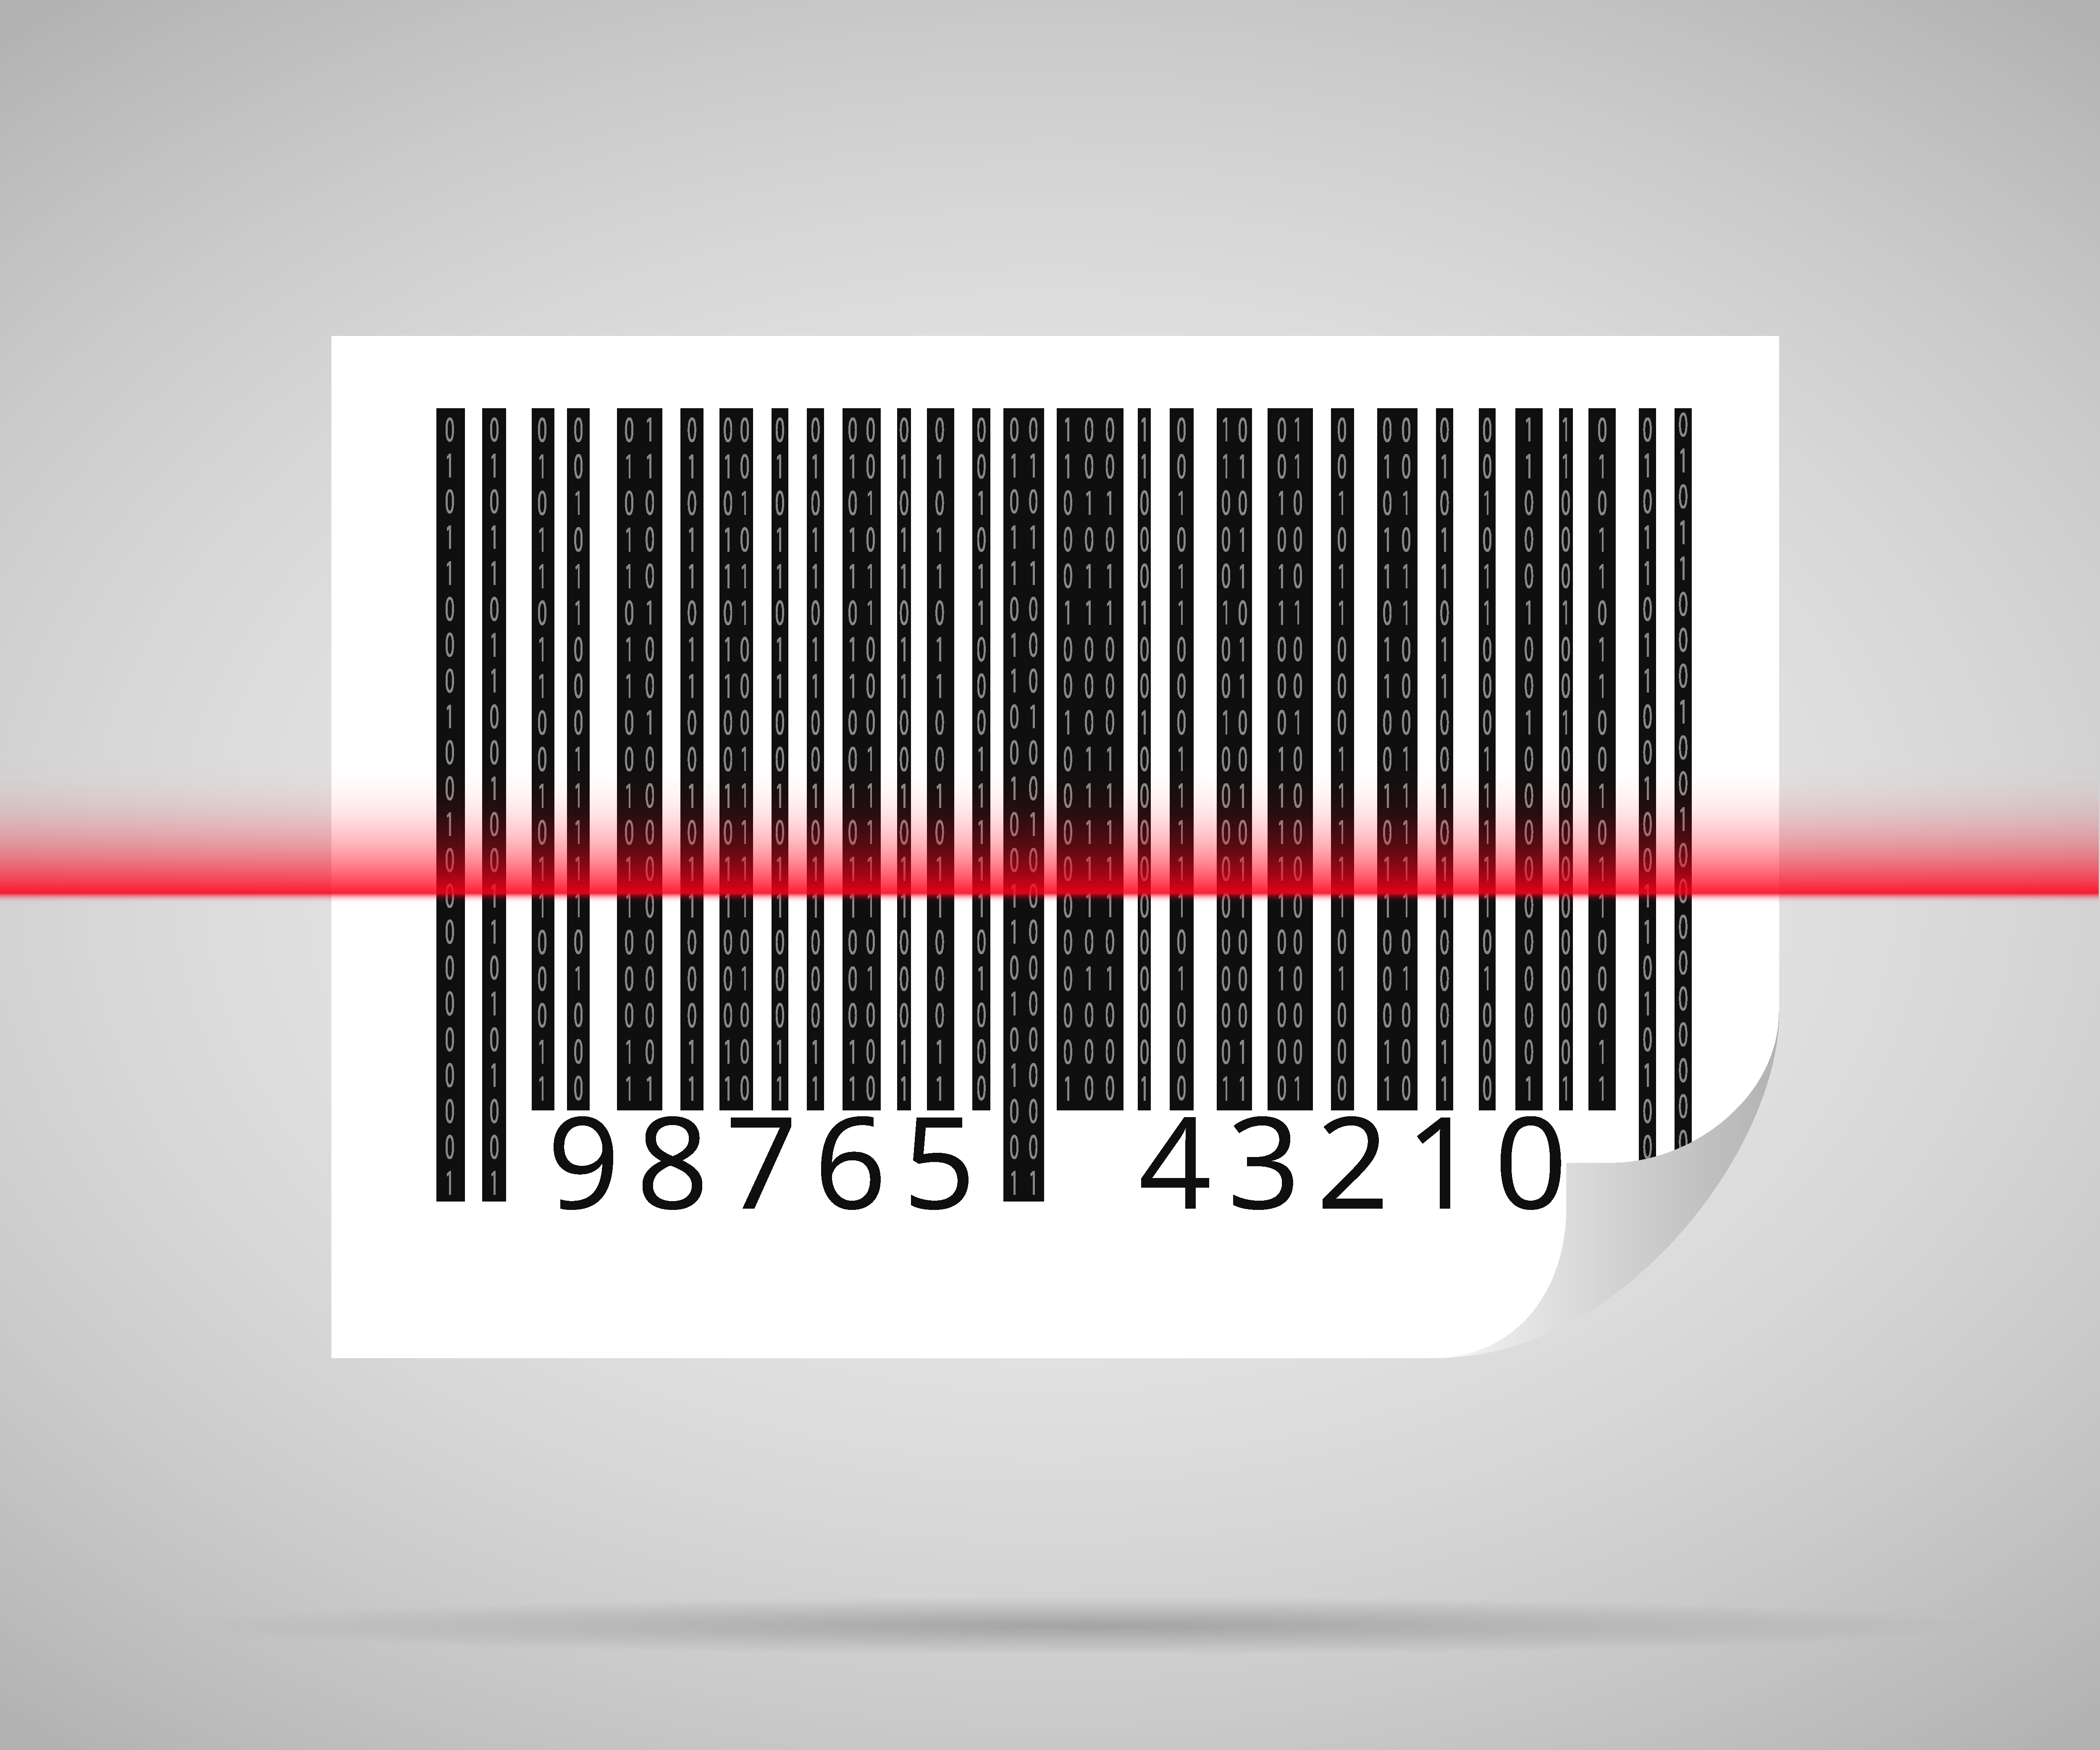 Placing Barcodes Correctly Can Save Time and Headaches for Warehouse Management